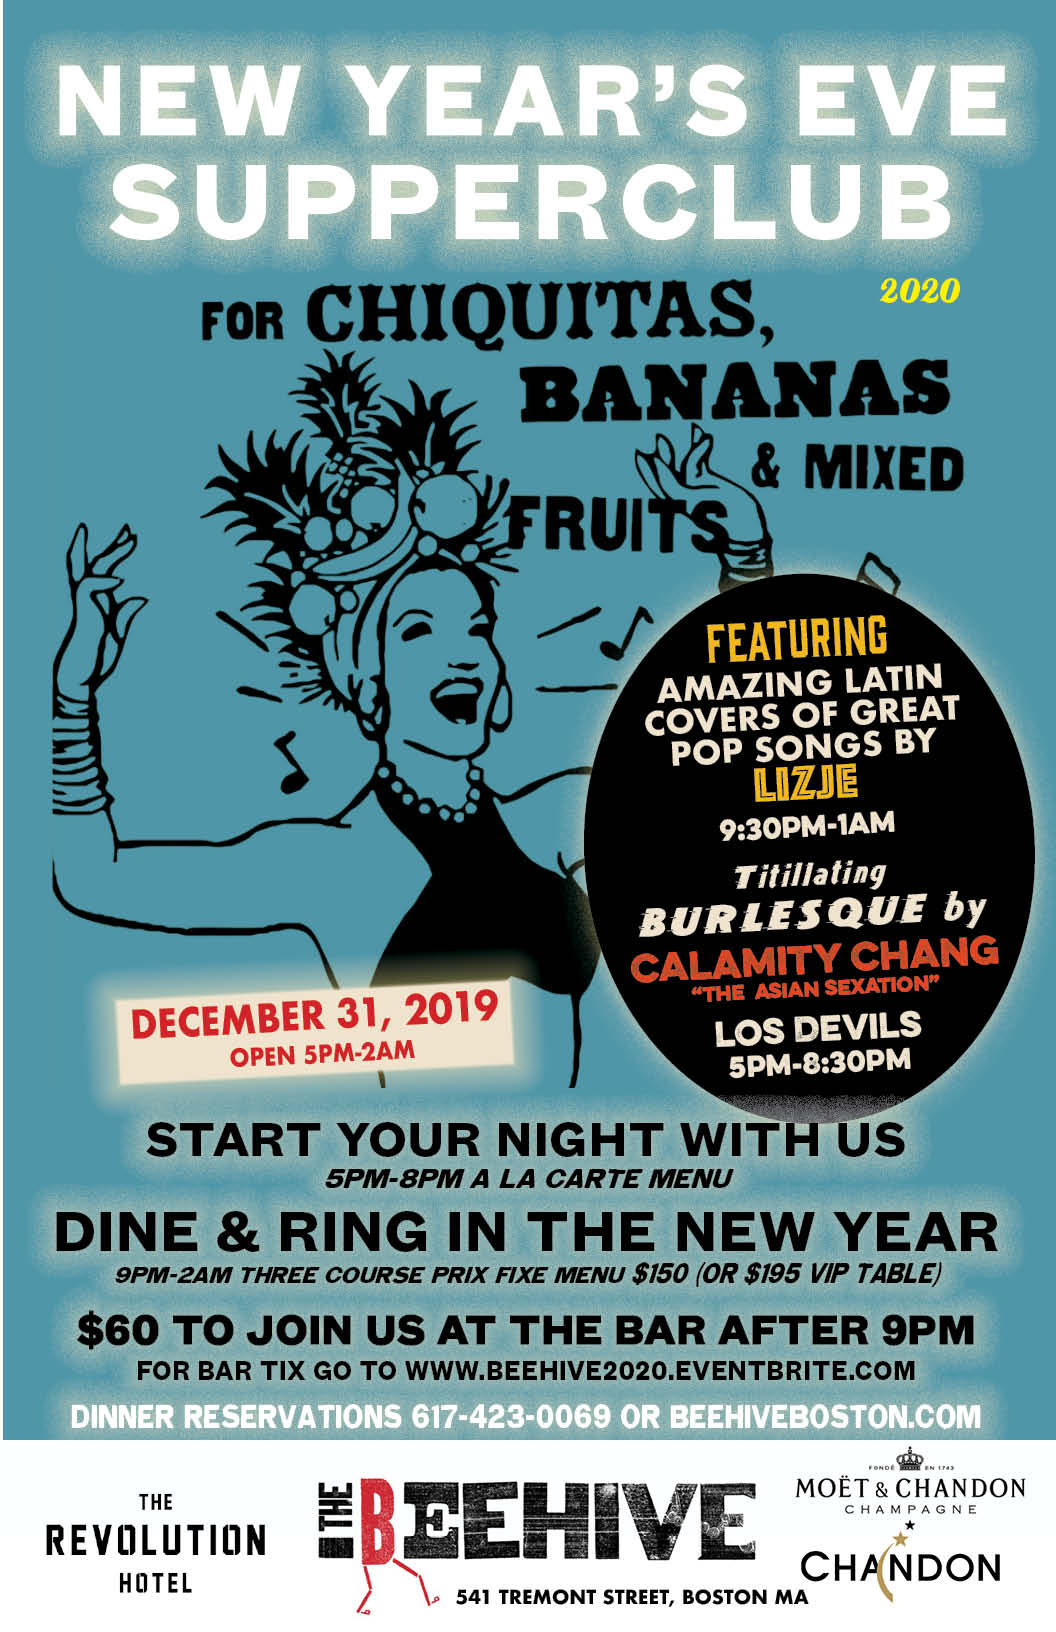 Boston New Years Eve 2020.The Beehive New Year S Eve Supperclub For Chiquitas Bananas 2020